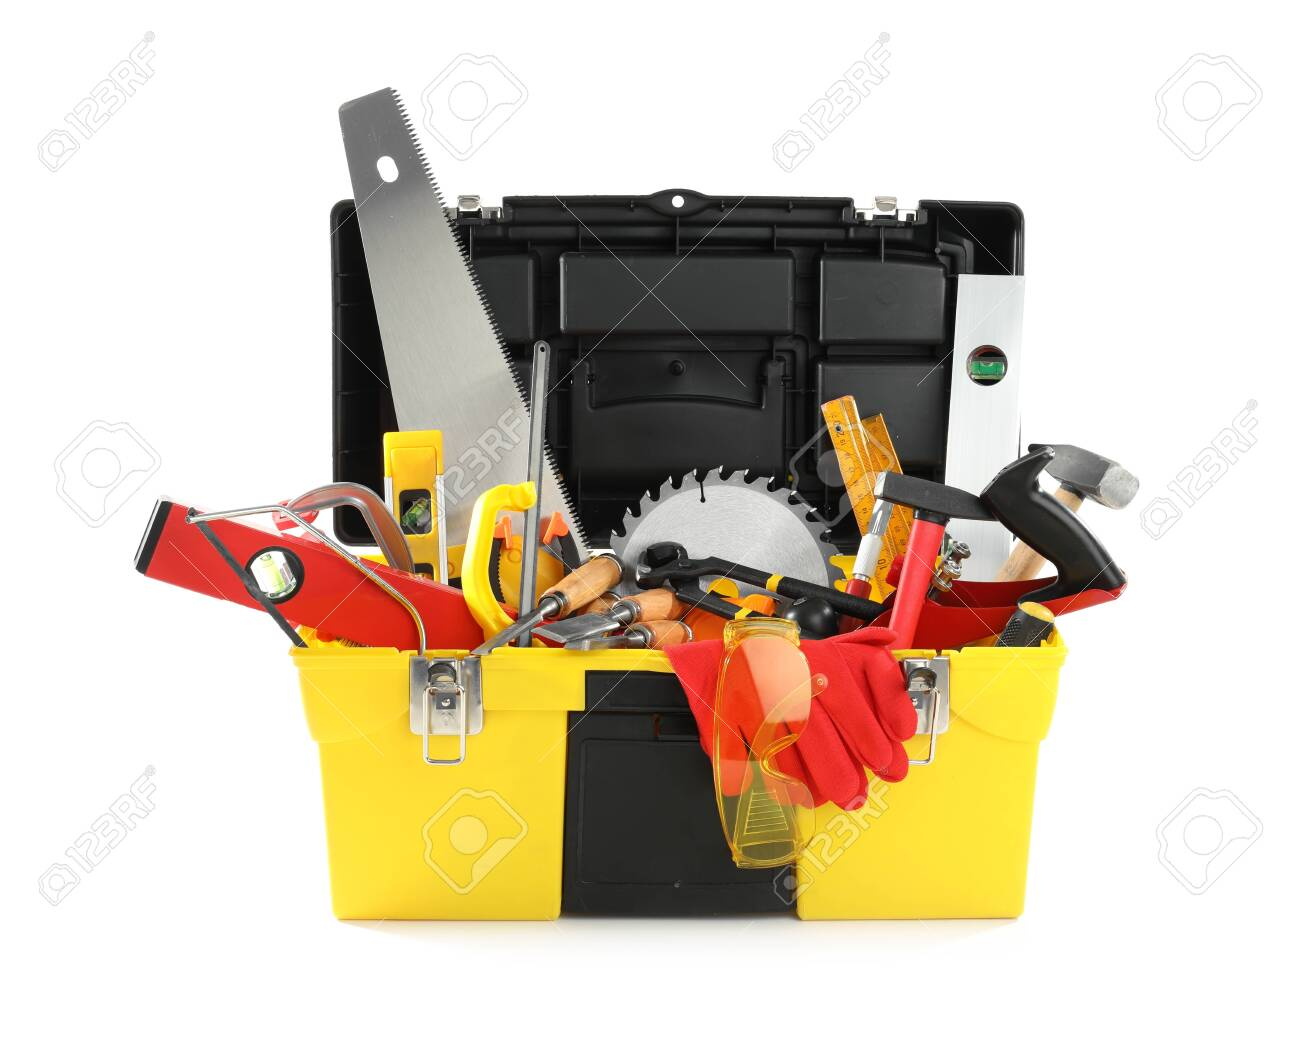 Box with different carpenter's tools isolated on white - 140746004